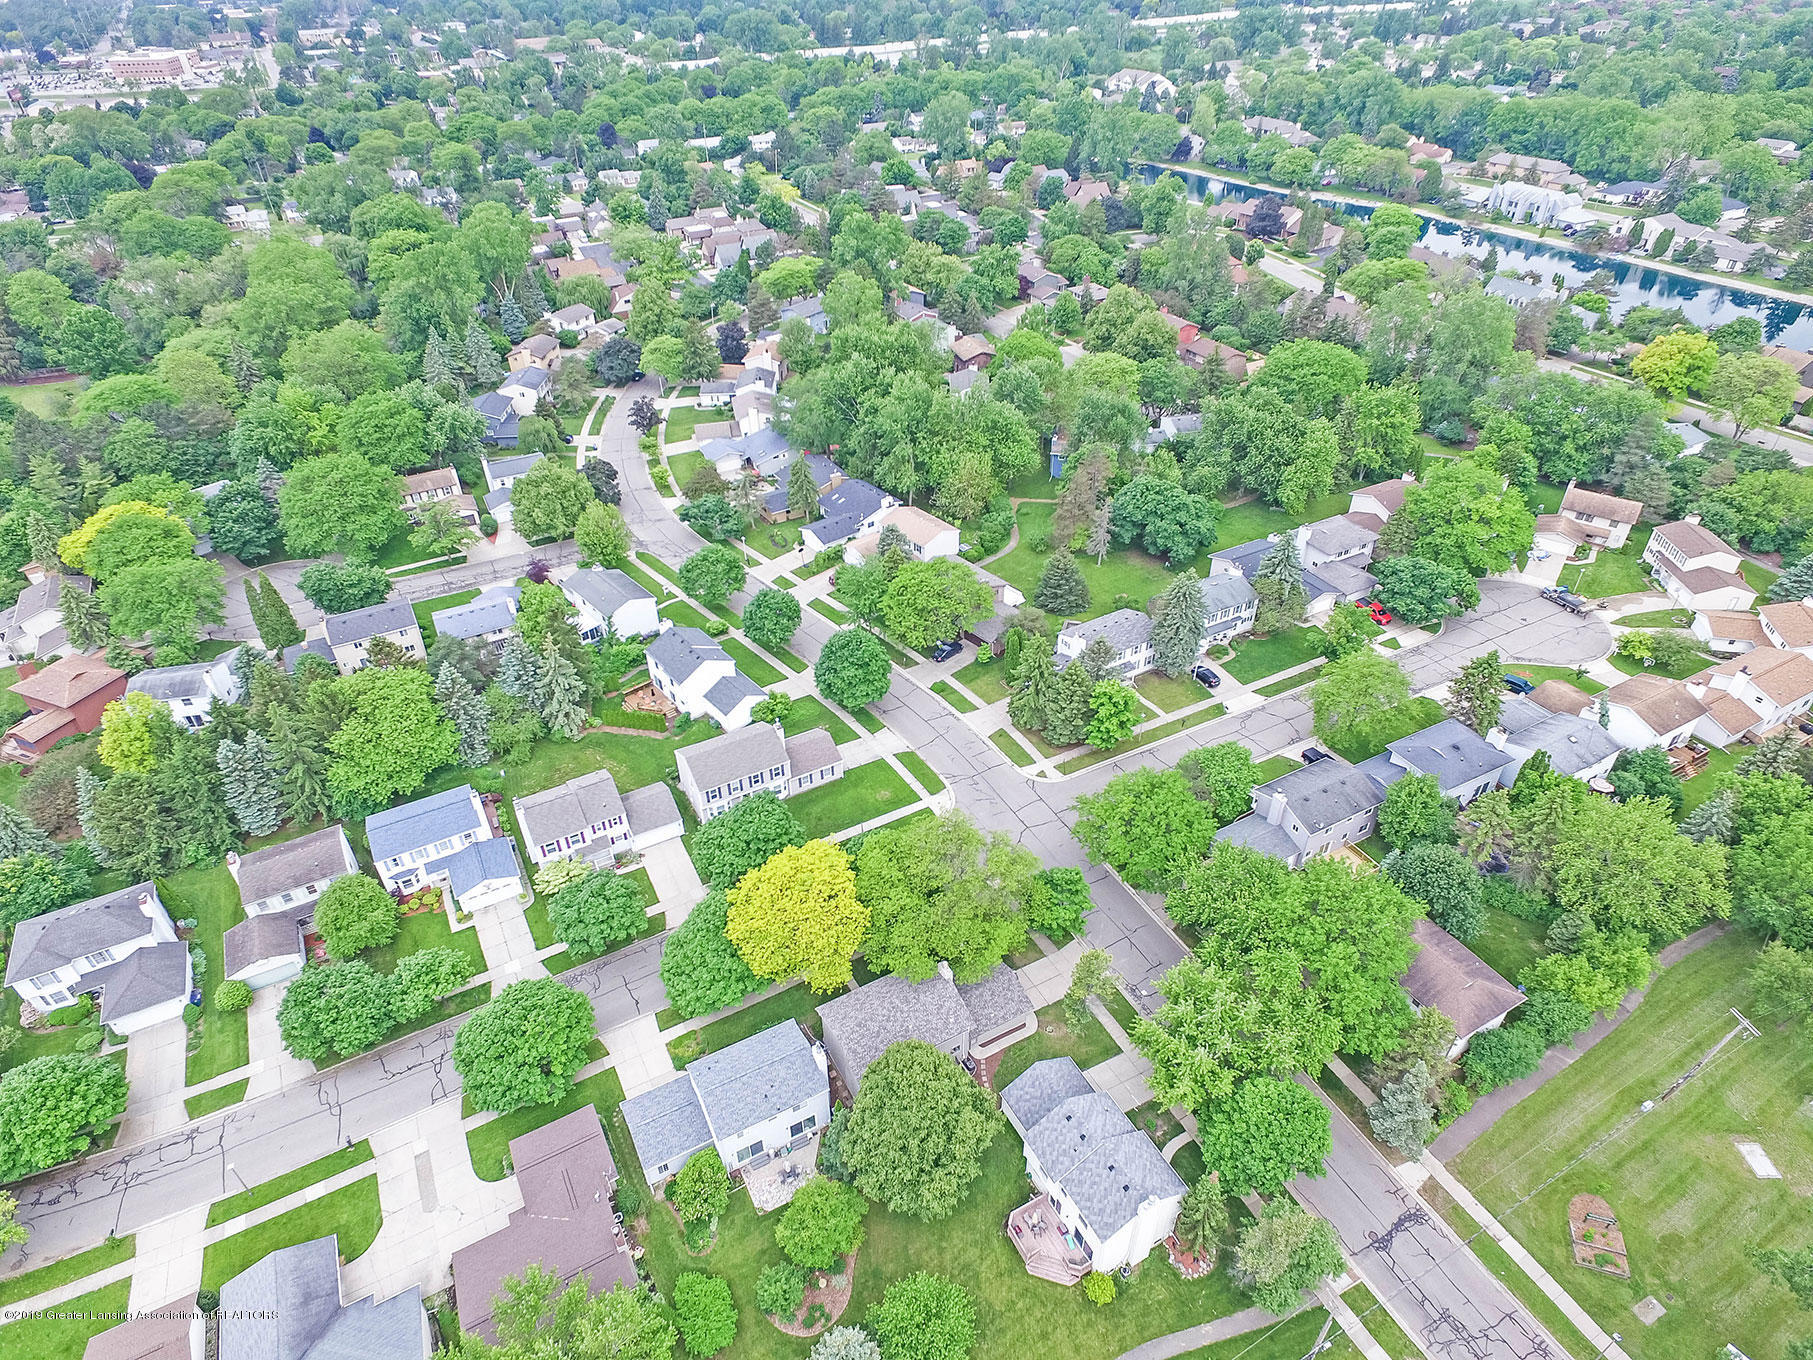 992 Touraine Ave - DJI_0022 - 47